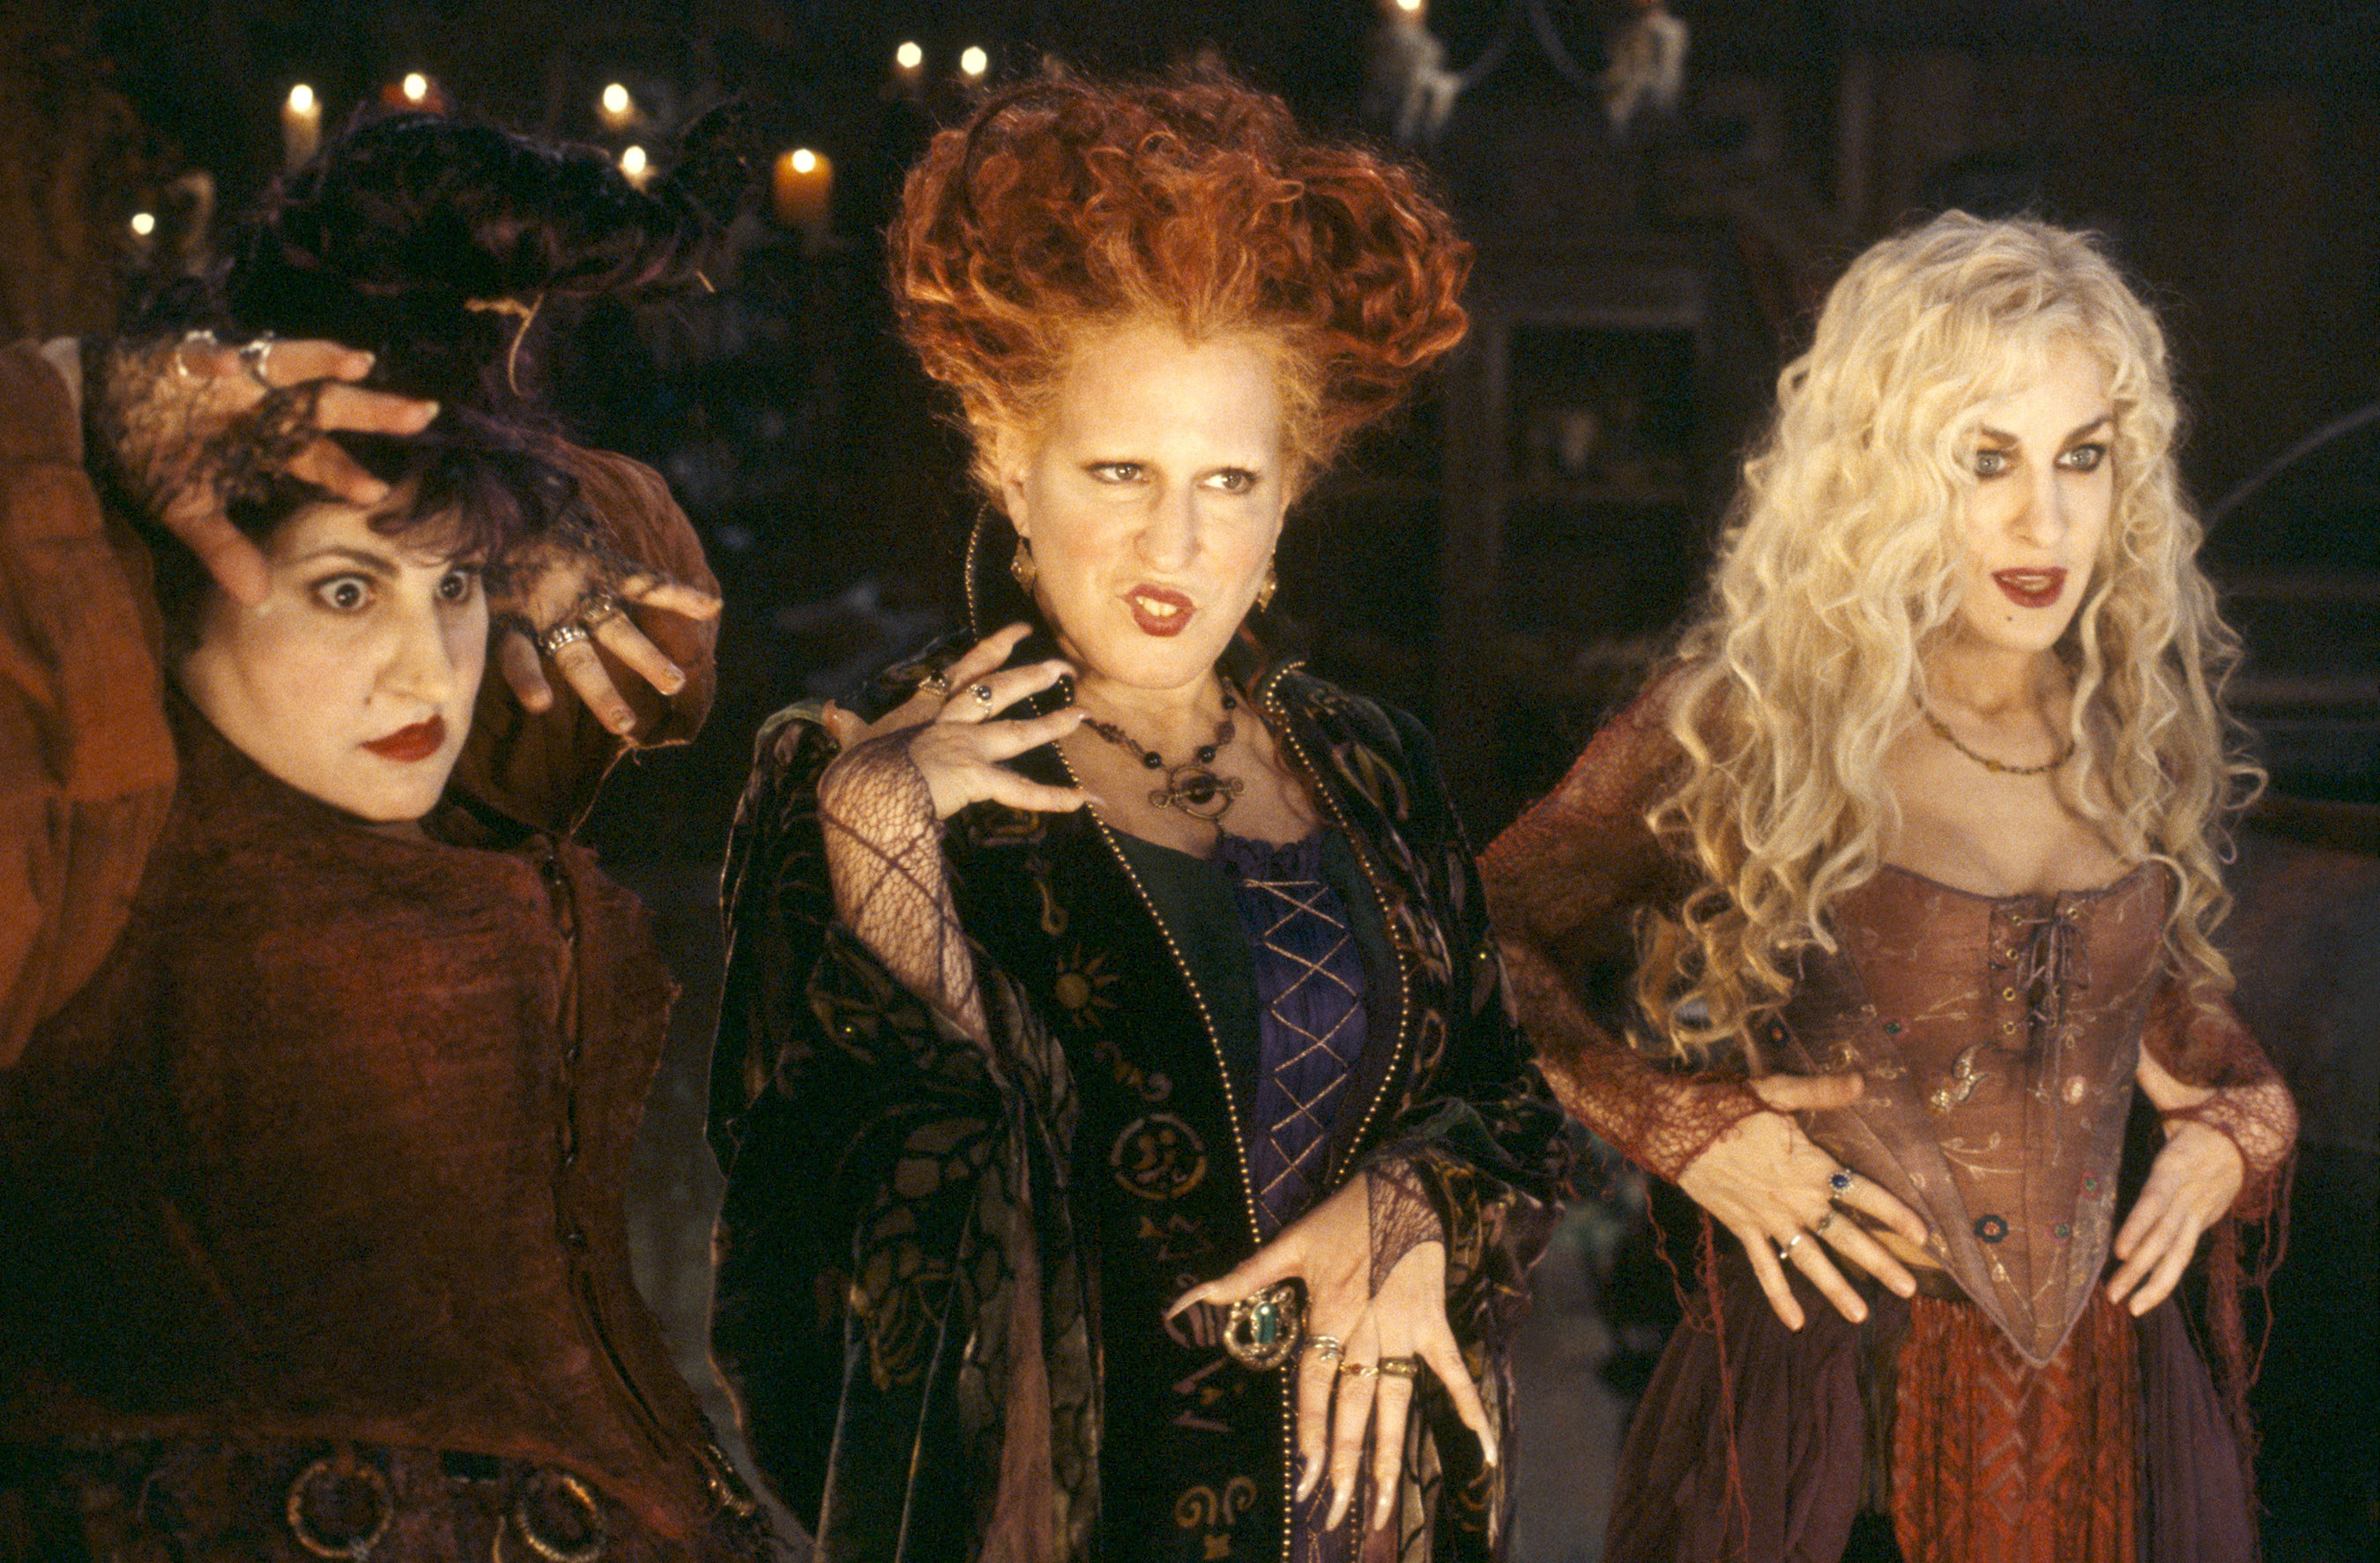 A photo of Kathy Najimy, Bette Midler, and Sarah Jessica Parker as the Sanderson Sisters